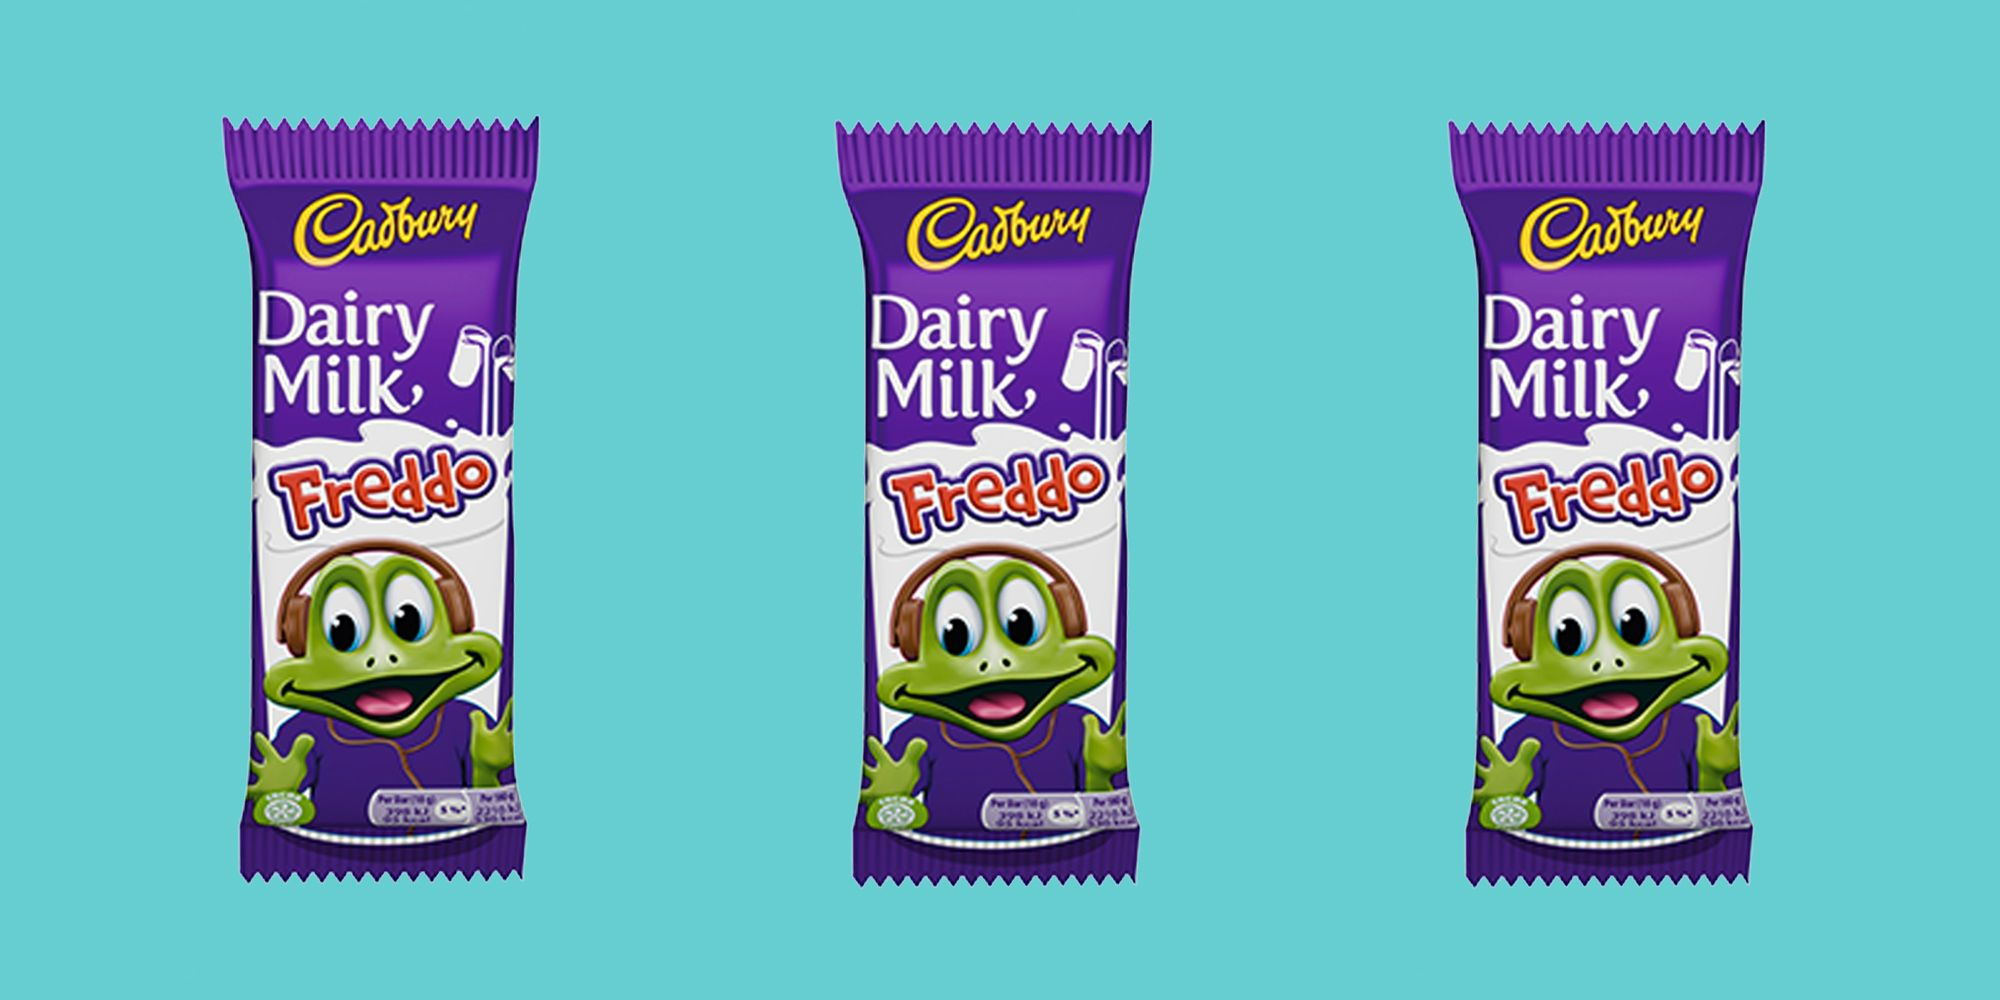 Cadbury S Freddo Ice Cream Sandwiches Exist And It S All Too Much